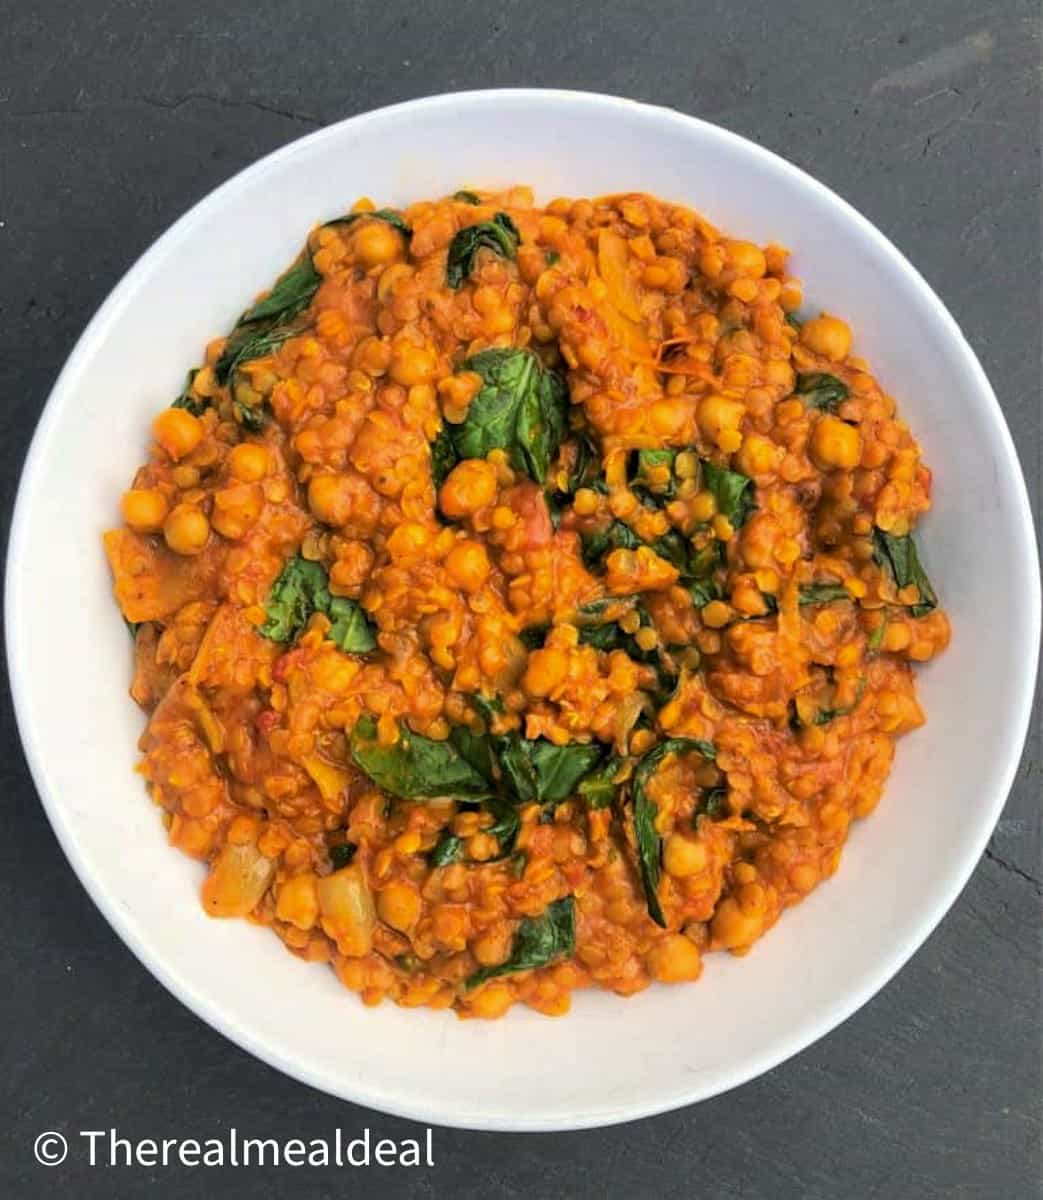 Chickpea lentil and spinach curry in a bowl